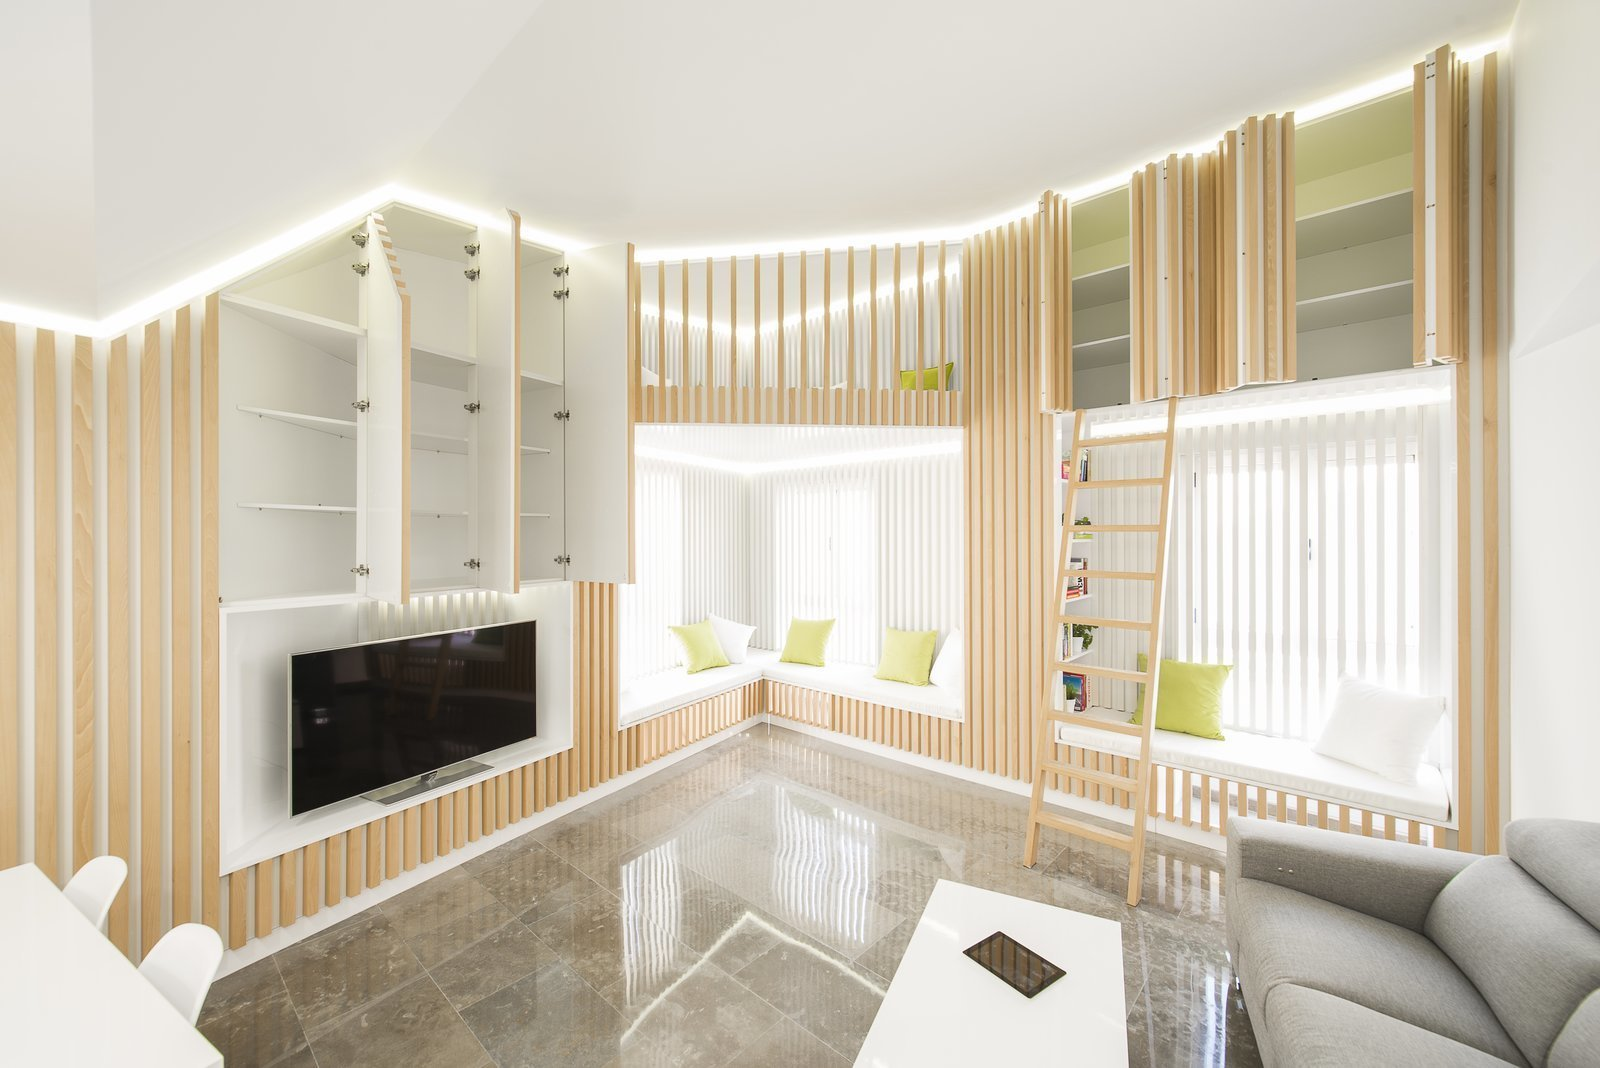 This Crisp Spanish Dwelling Makes Use of Every Nook and Cranny